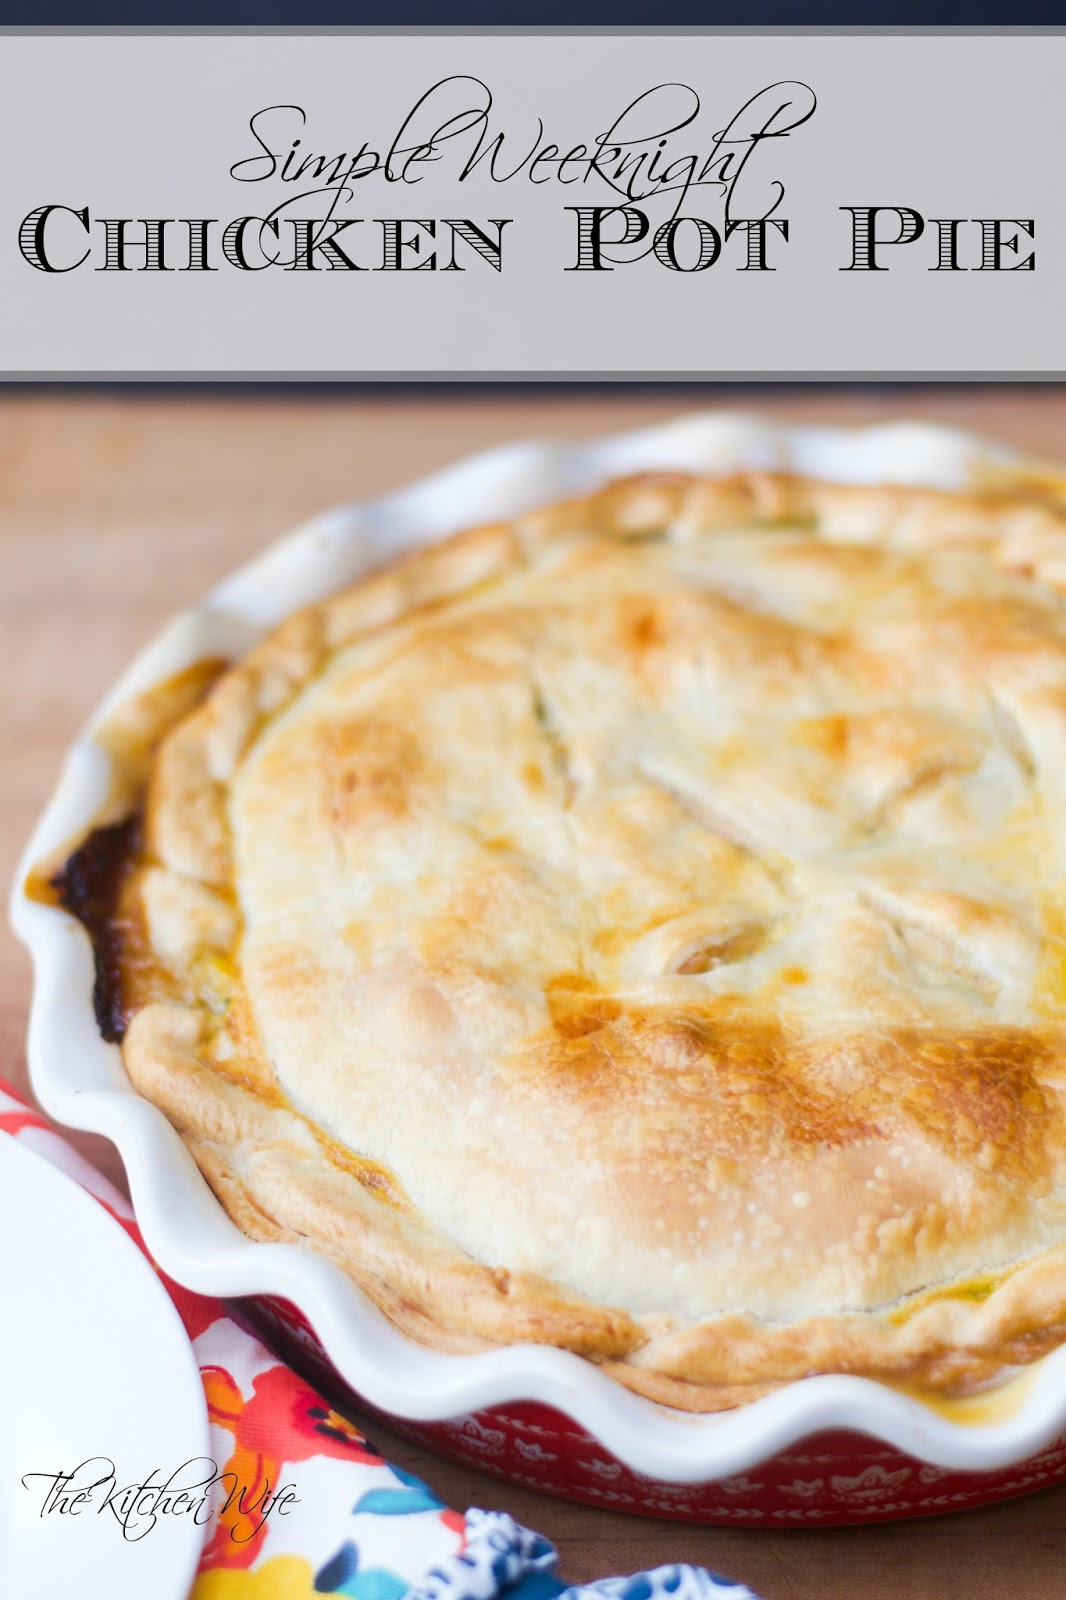 Simple weeknight chicken pot pie recipe the kitchen wife with the change of the season its time for comfort food and nothing is more comforting than a chicken pot pie forumfinder Images